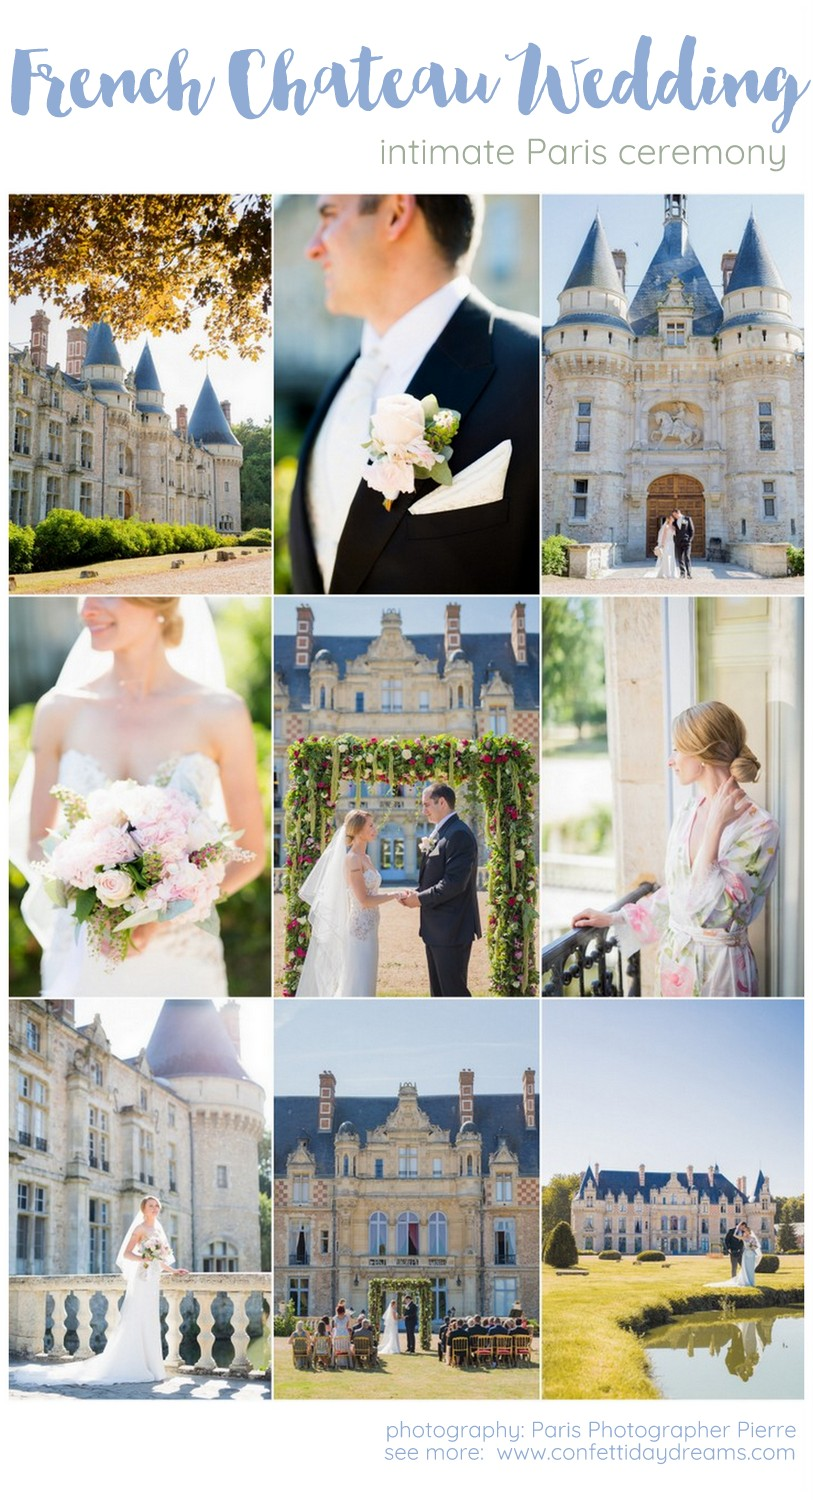 Plan an Intimate French Chateau Wedding